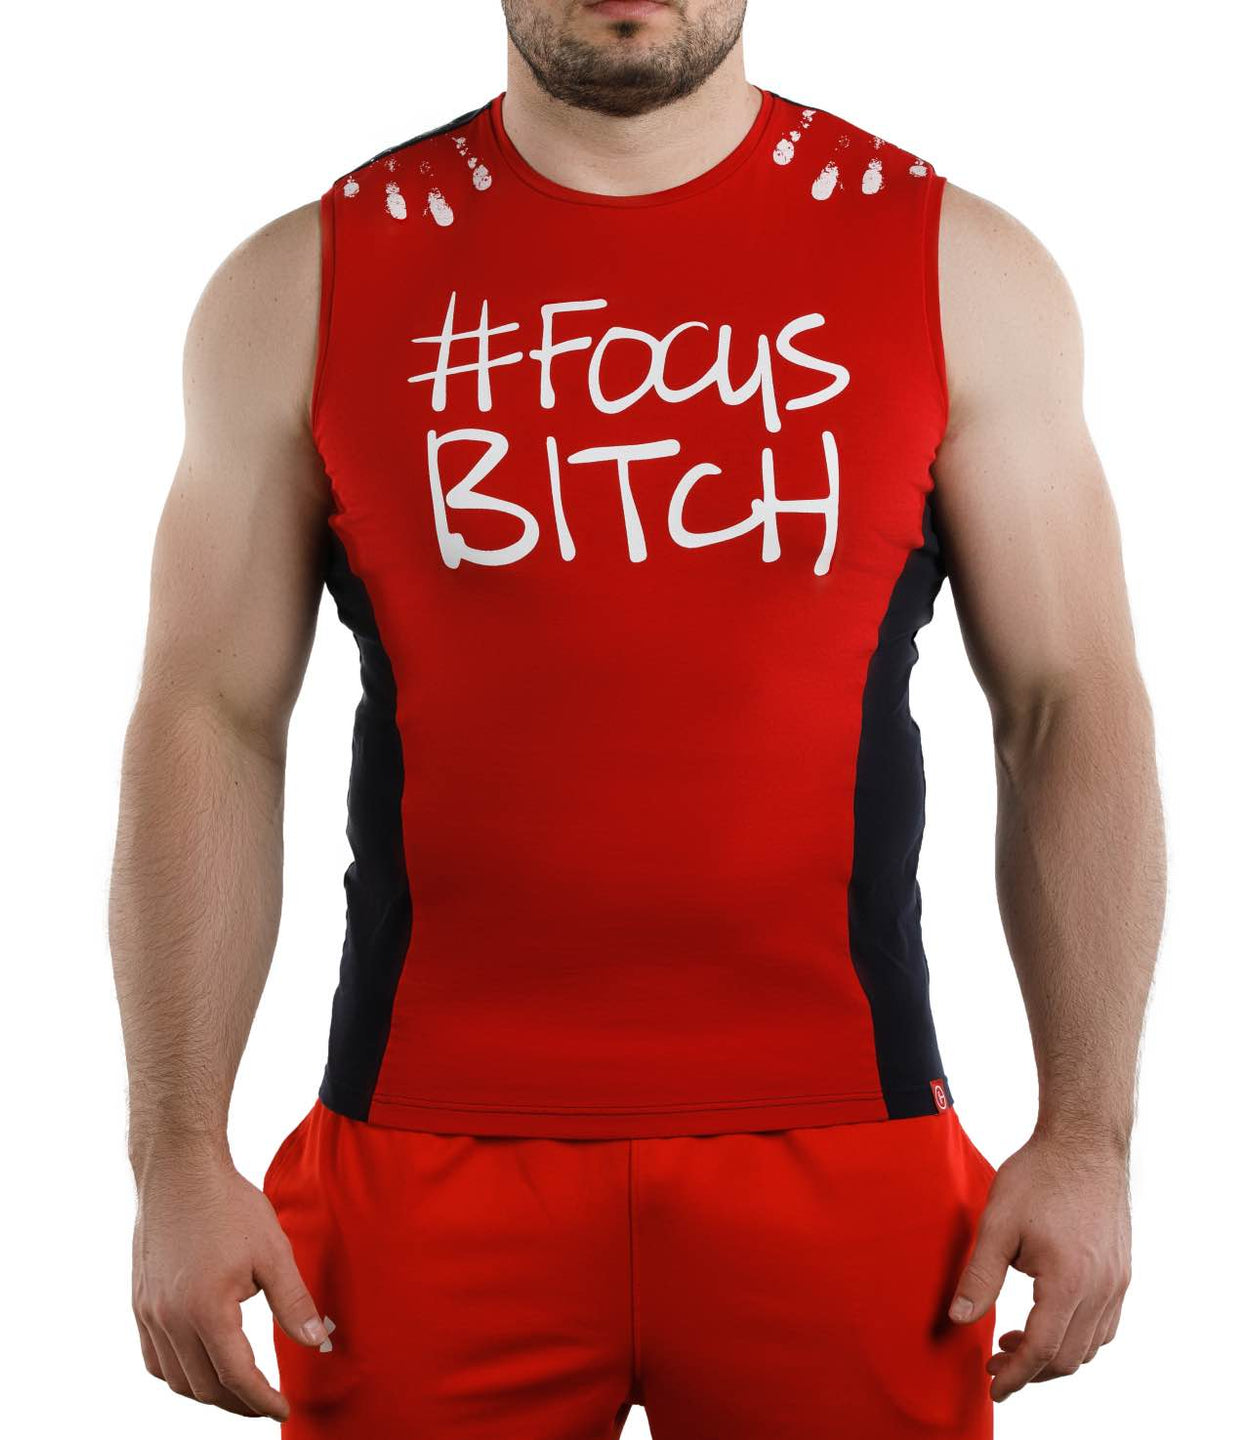 TANK TOP #FOCUSBITCH (LIMITED RUN)